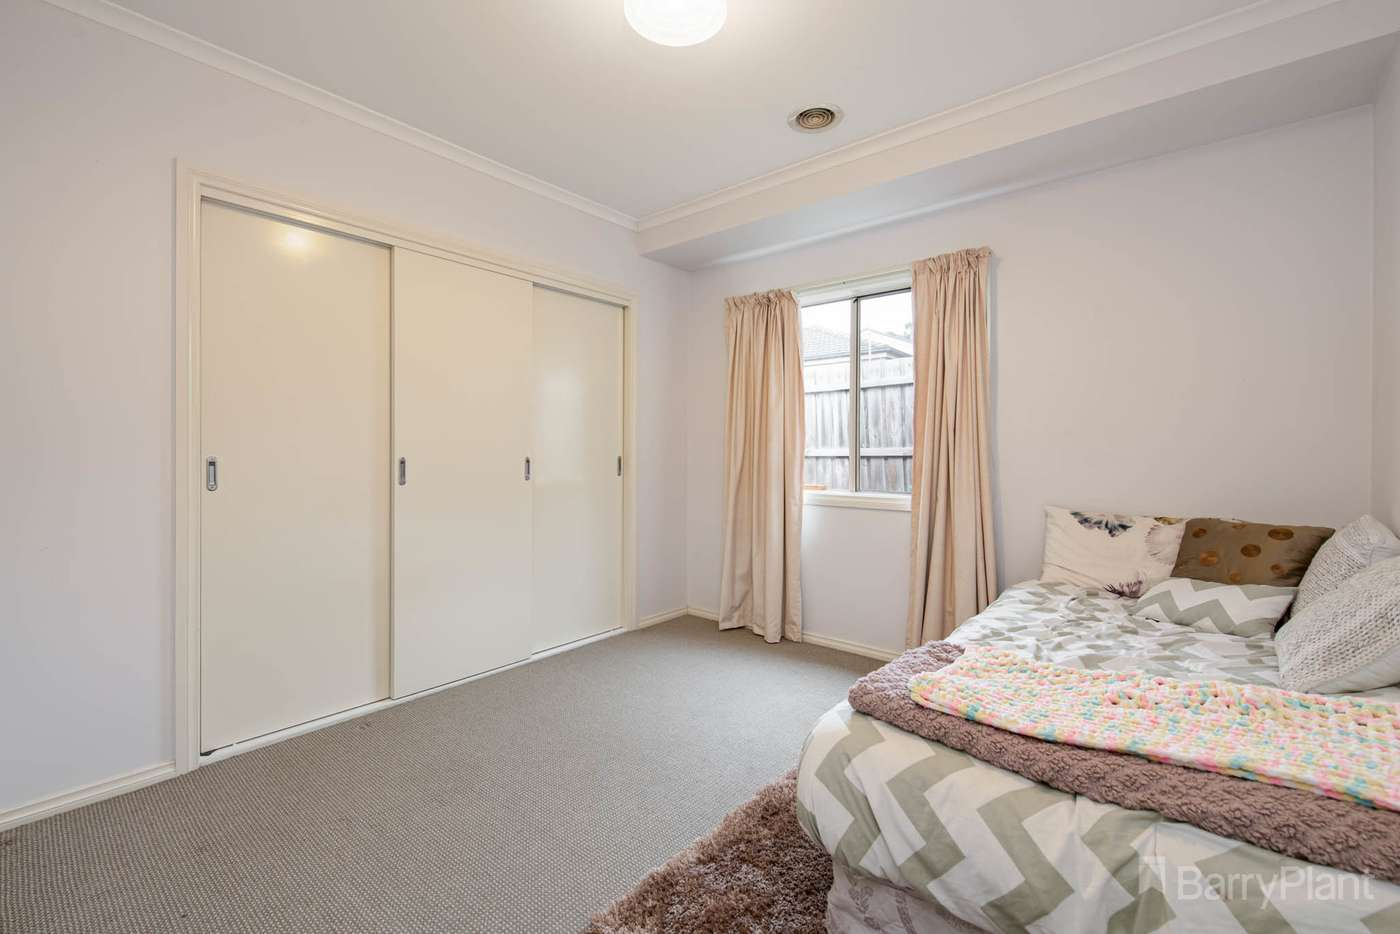 Sixth view of Homely house listing, 2/26 Donday Court, Pakenham VIC 3810